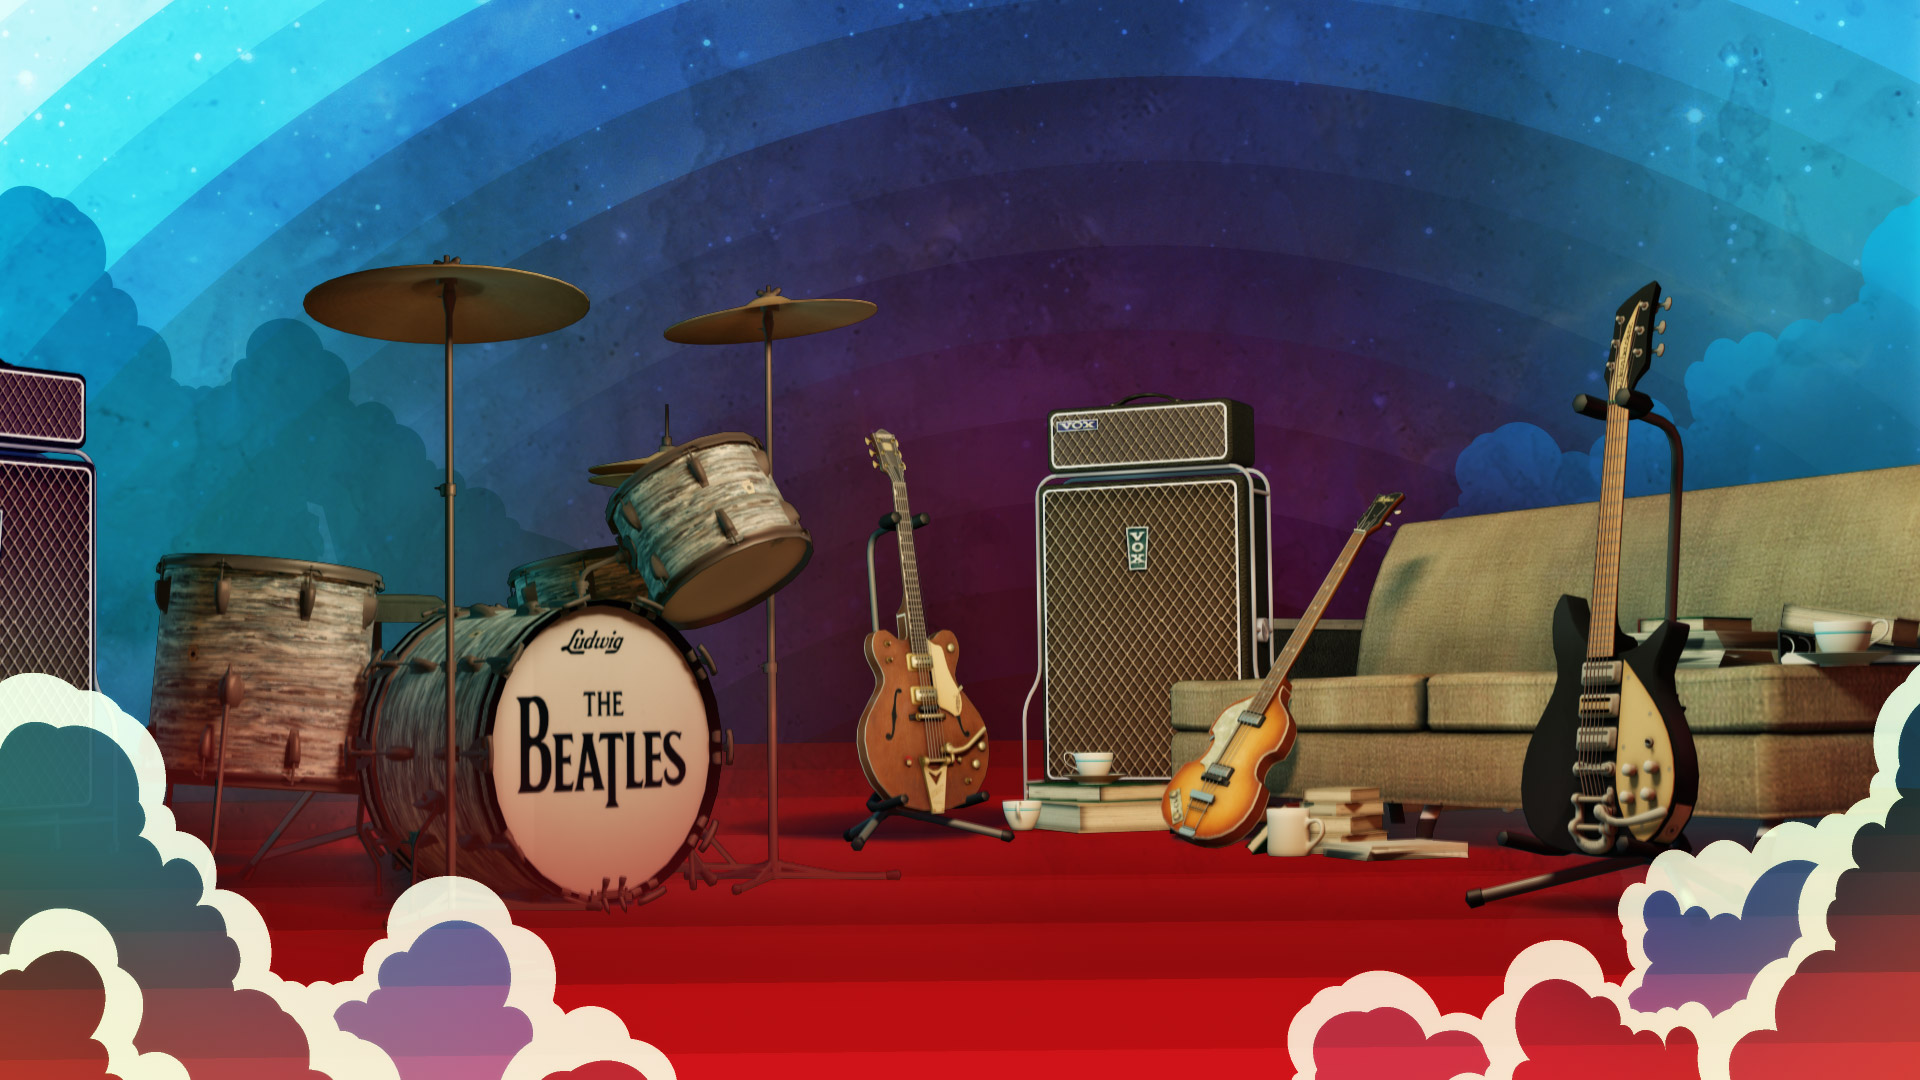 The Beatles: Rock Band Wallpaper in 1920x1080